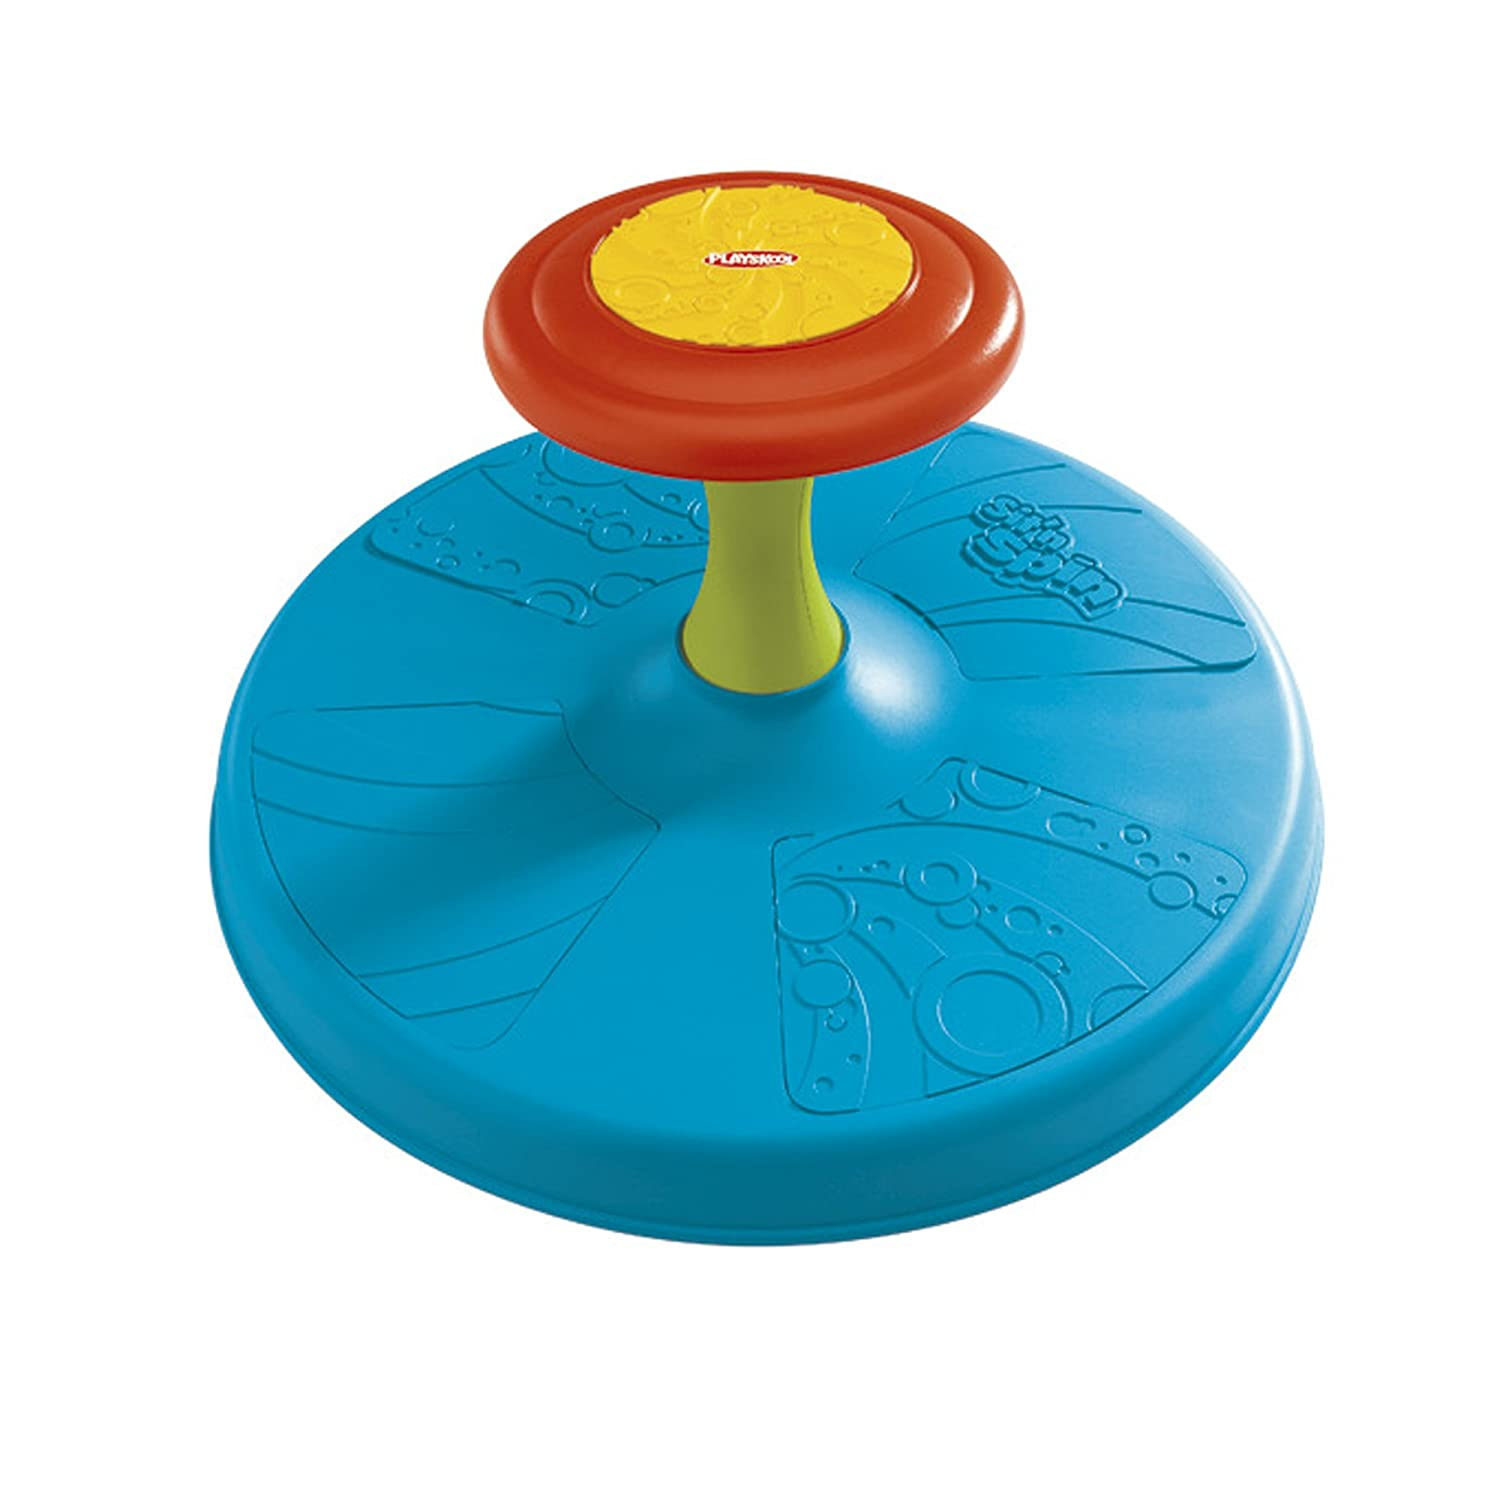 Playskool Sit N Spin Classic Spinning Activity Toy For Hey Baby Busy Bee Round Bib Toddlers Ages Over 18 Months Toys Games